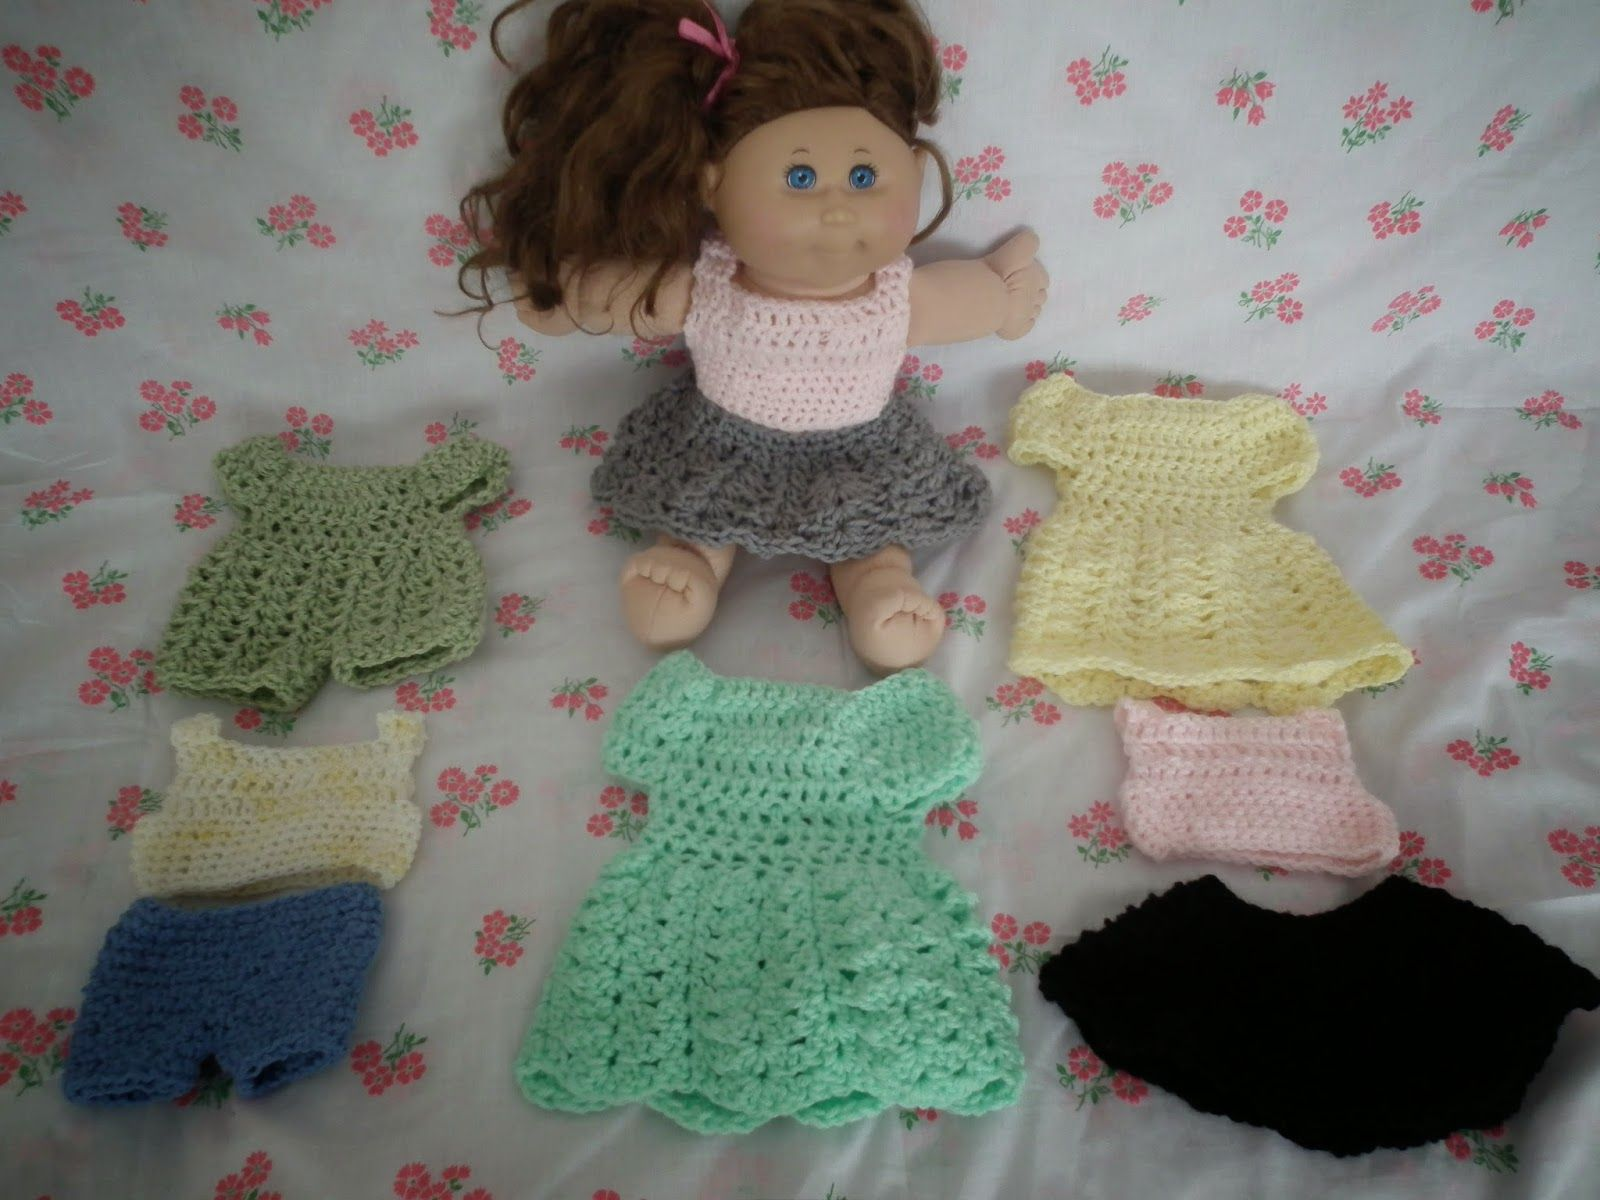 Crochet cabbage patch kid doll clothes tutorial crochet cabbage crochet cabbage patch kid doll clothes tutorial dt1010fo